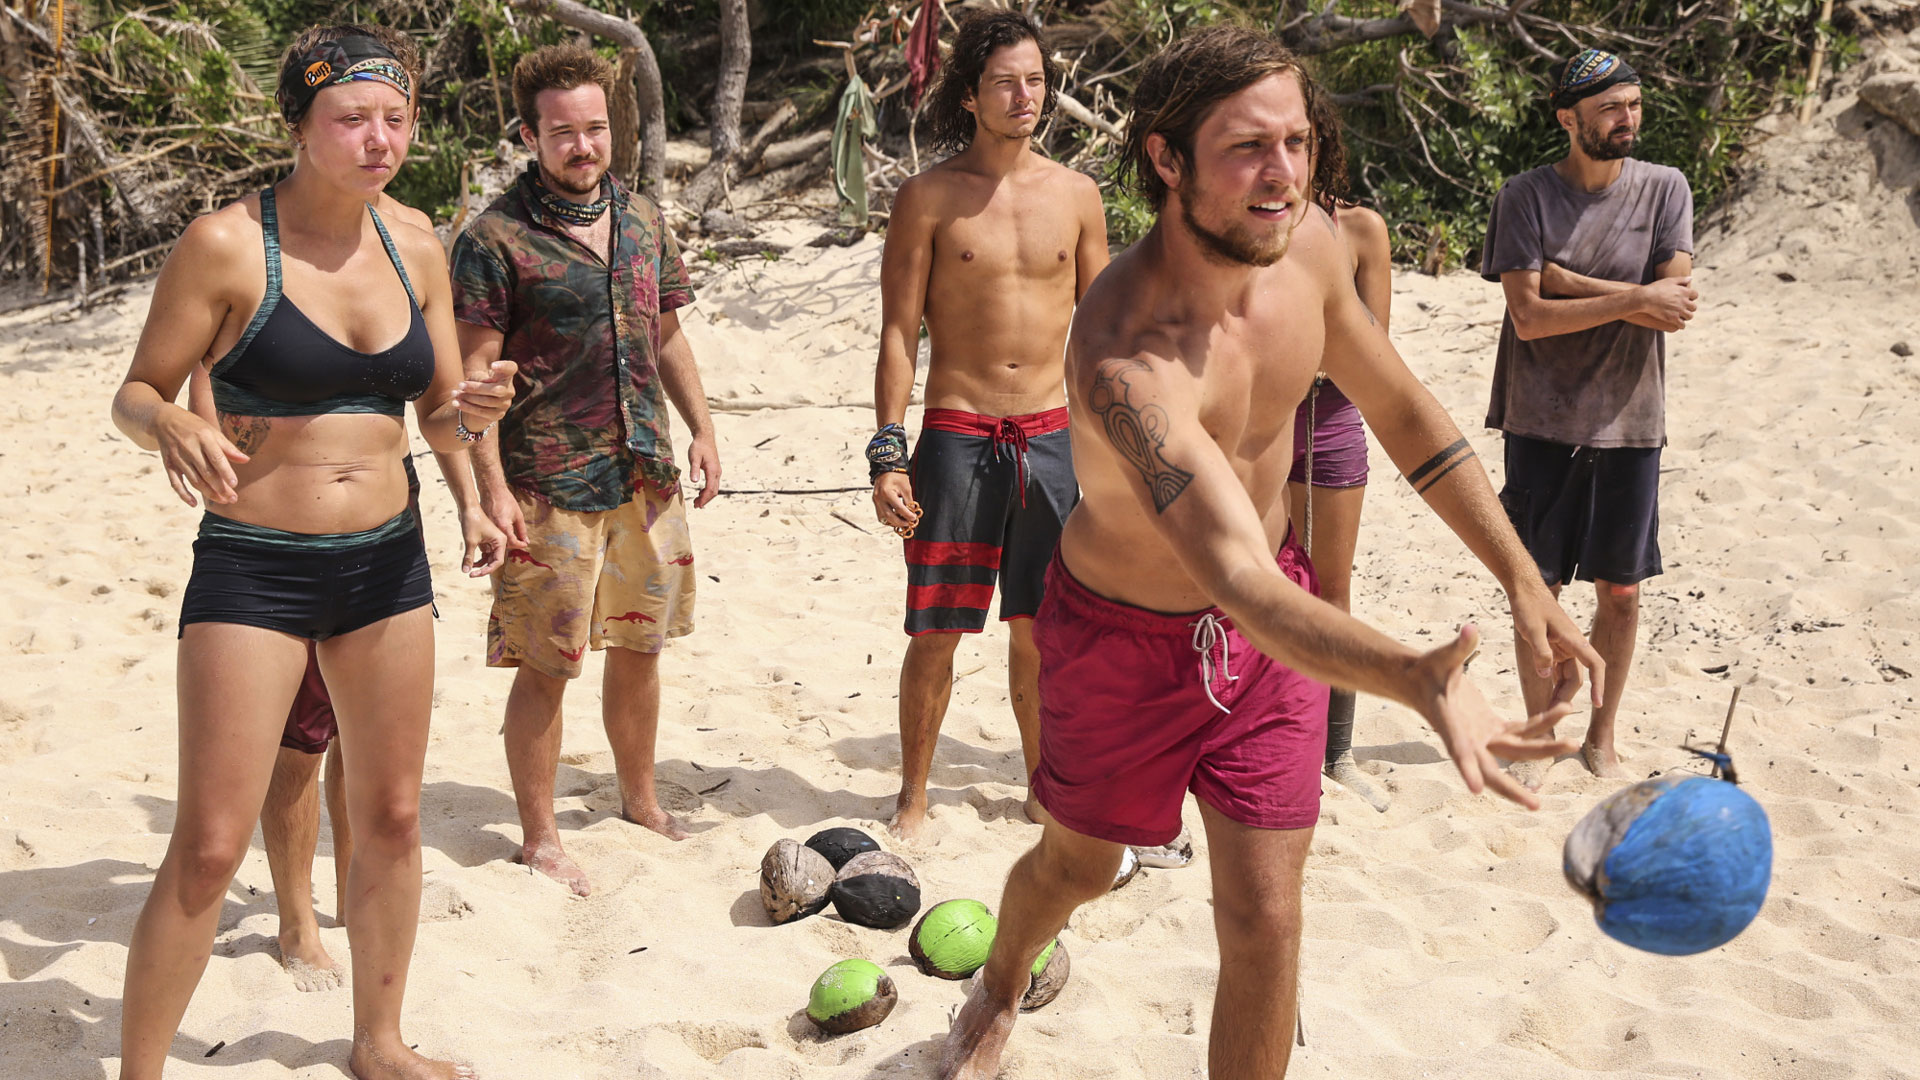 Taylor takes a toss while his tribe mates watch.